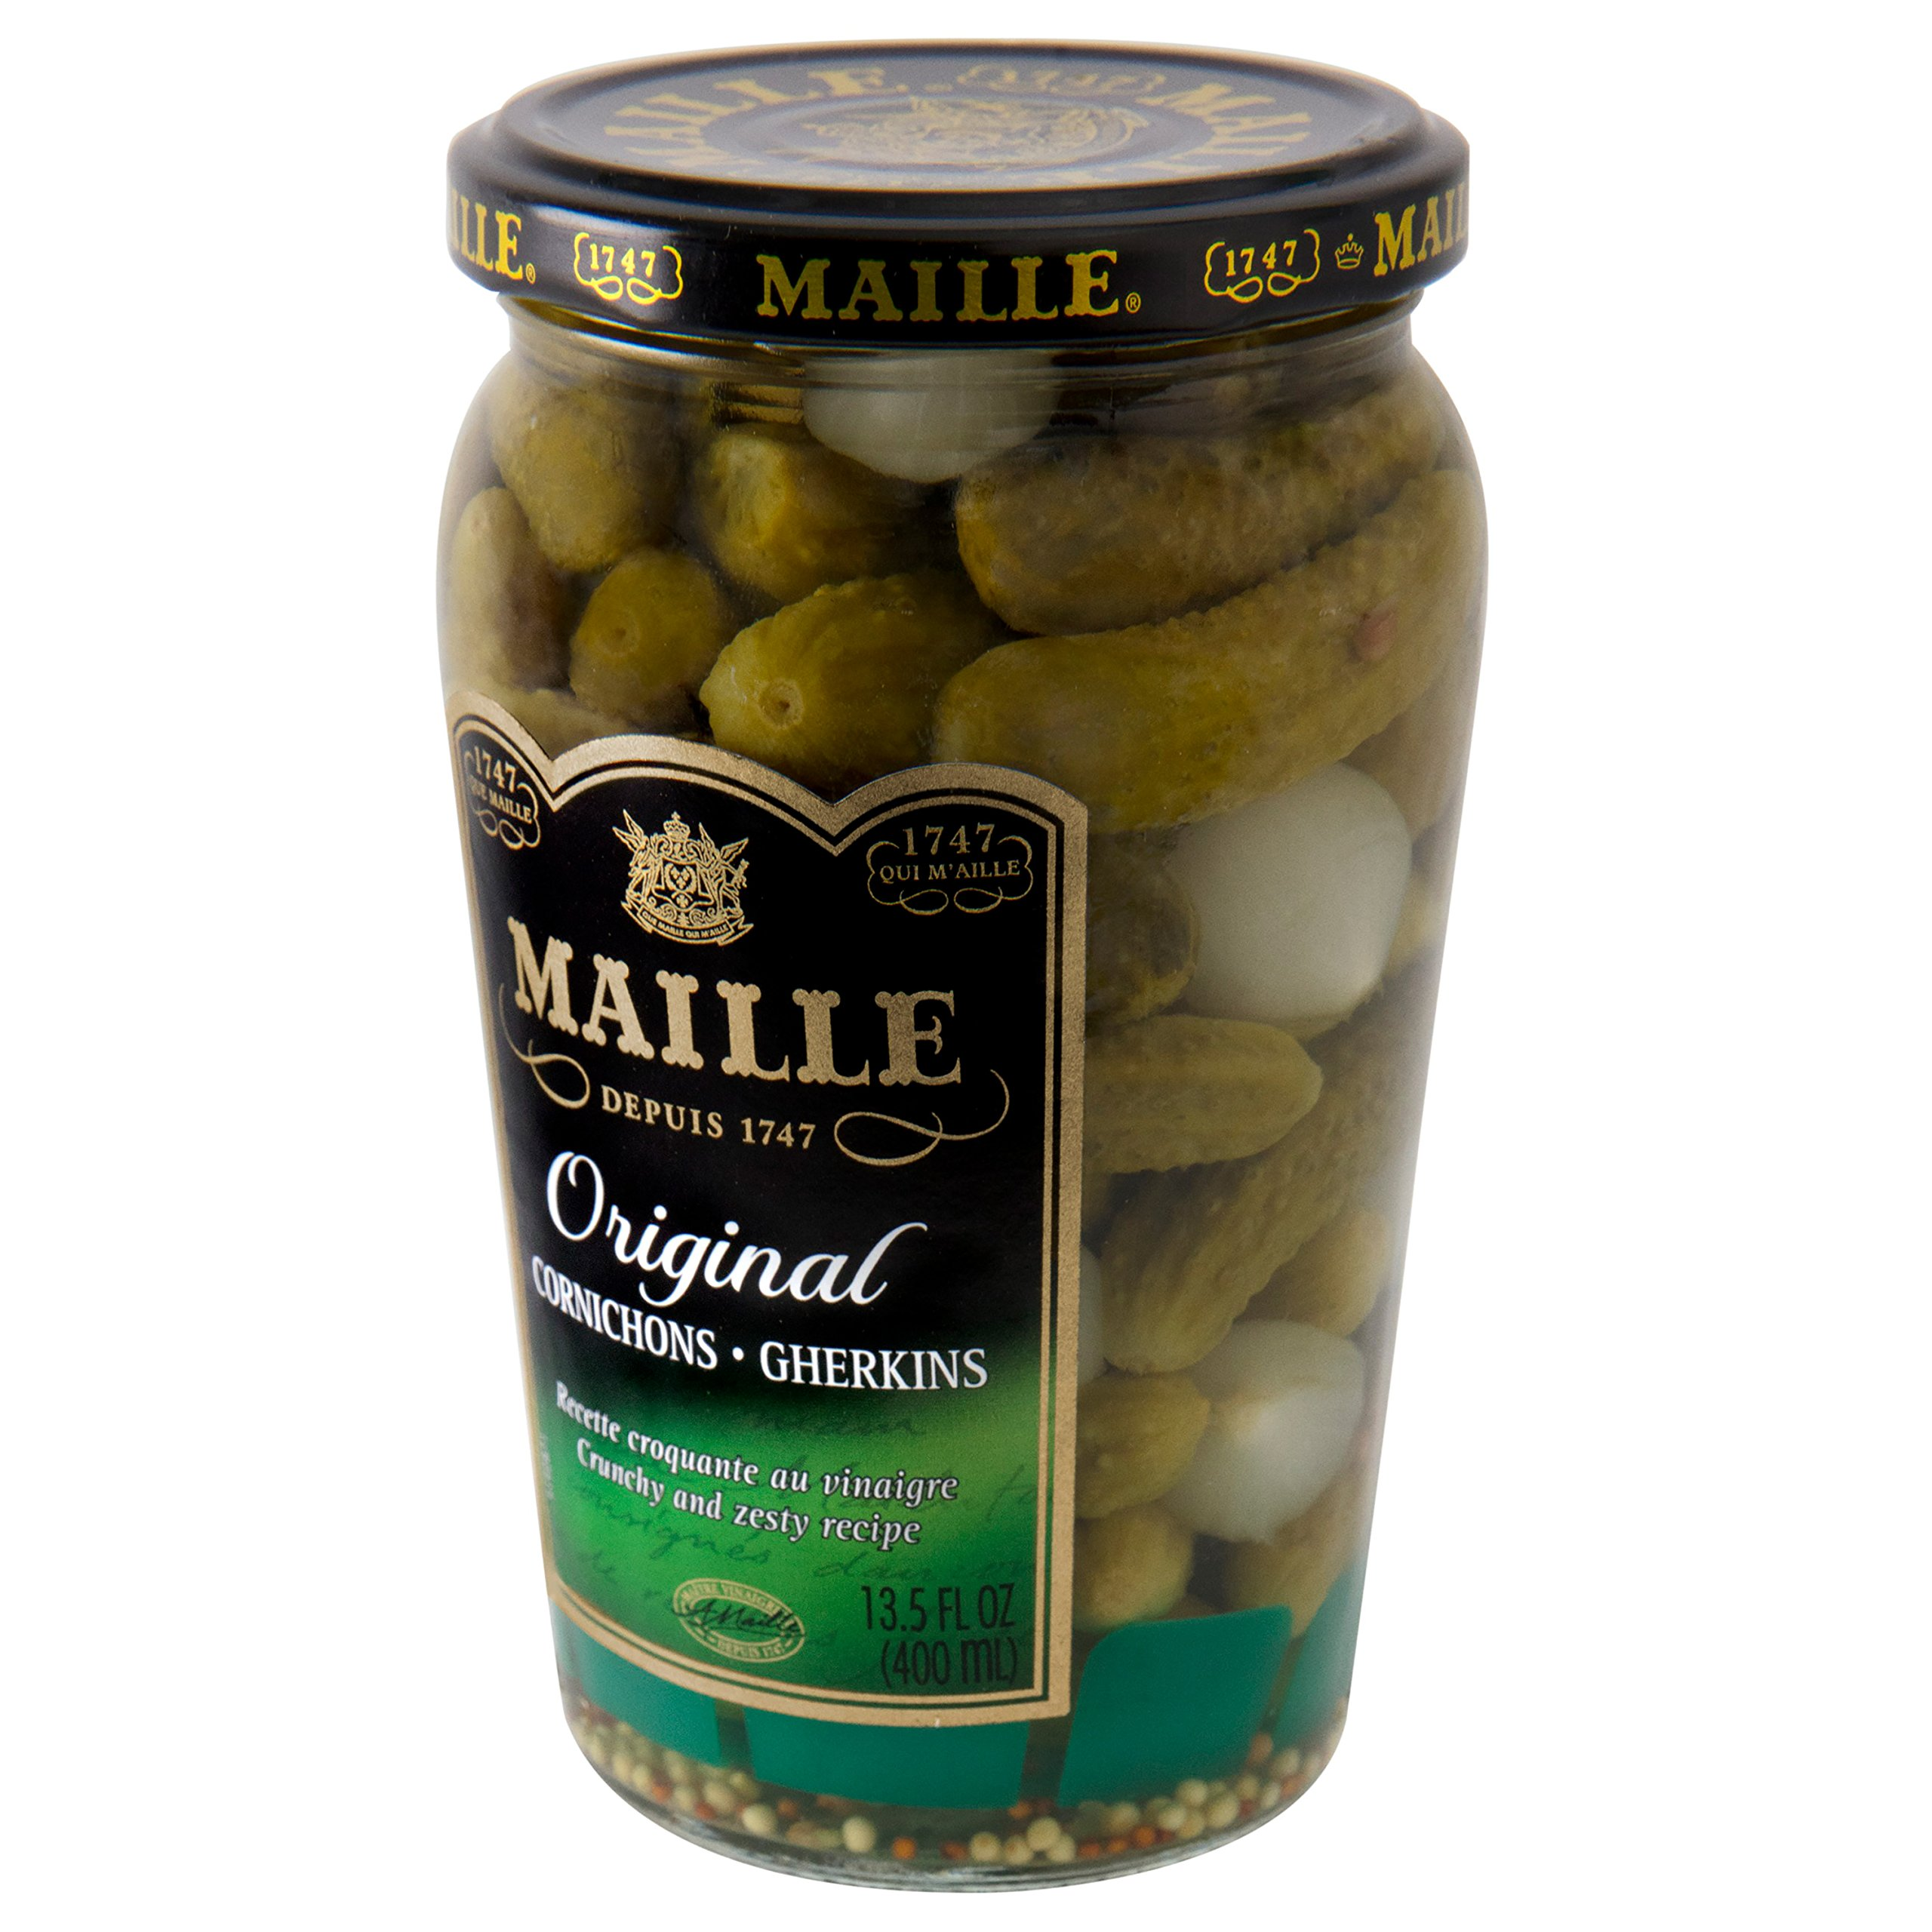 Maille Pickles, Cornichons Original, 13.5 oz, Pack of 12 by Maille (Image #6)